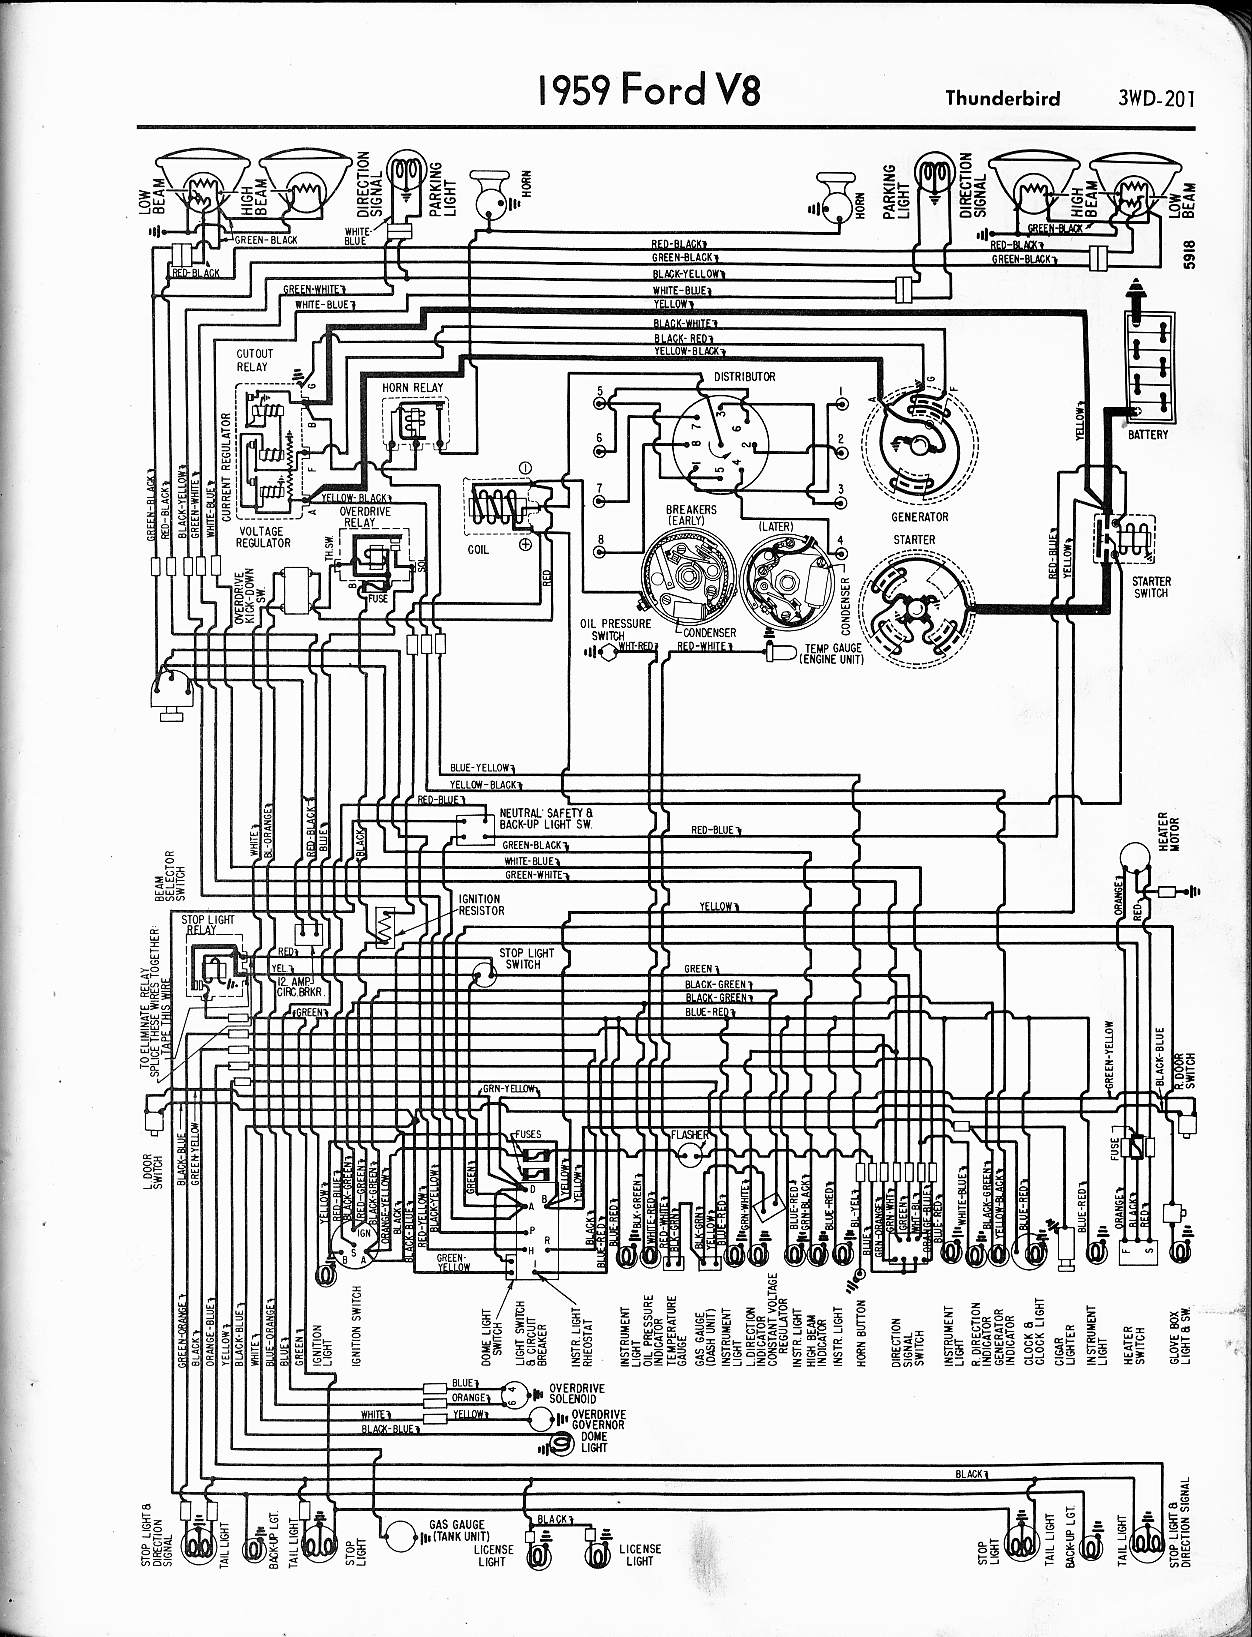 1973 Ford F100 Starter Solenoid Wiring Diagram Content Resource Of 1977 1962 Truck Online Schematics Rh Delvato Co 1960